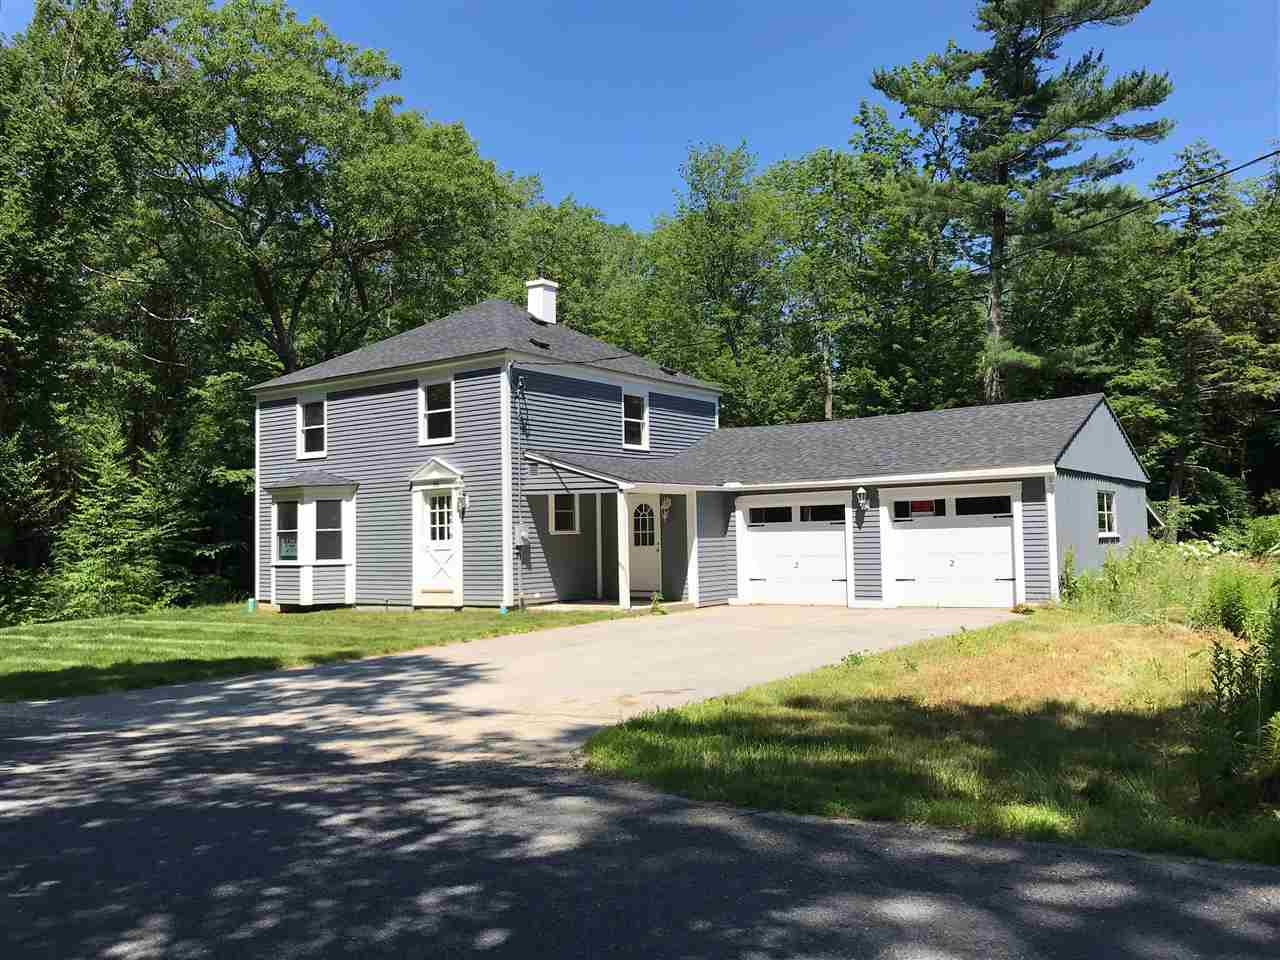 MLS 4722752: 116 Monument Road, Dublin NH